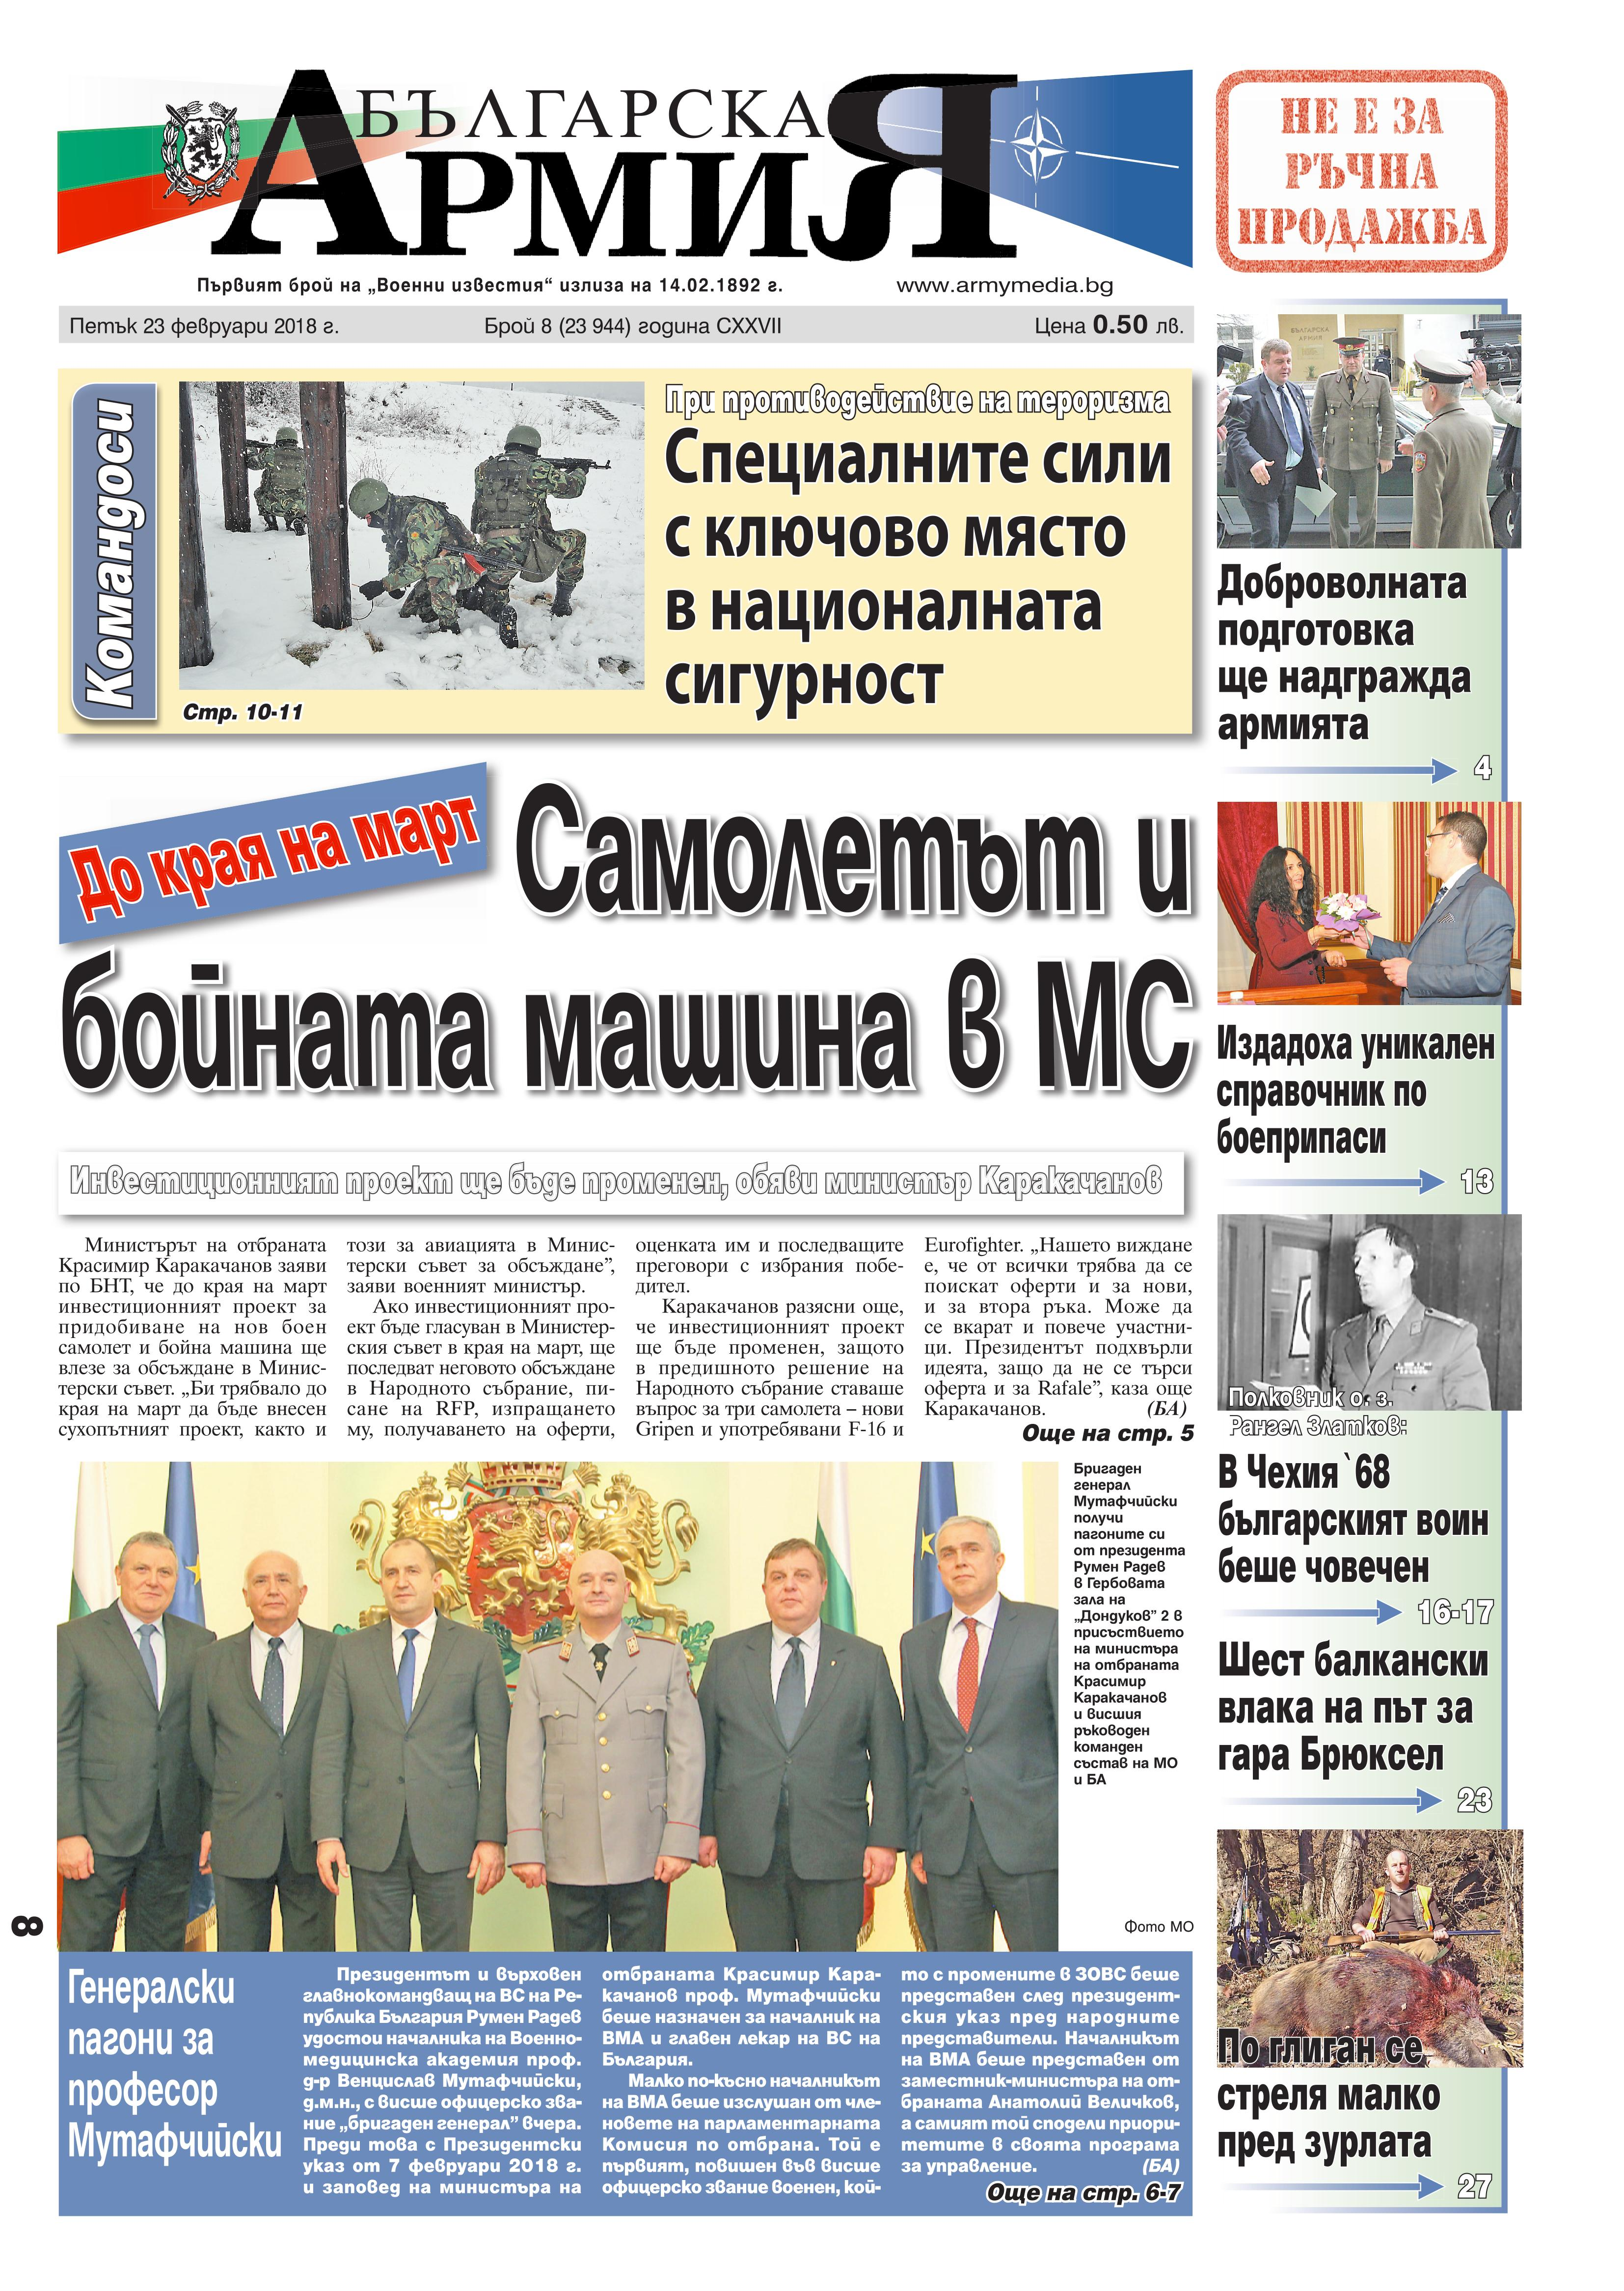 http://armymedia.bg/wp-content/uploads/2015/06/01.page1_-38.jpg